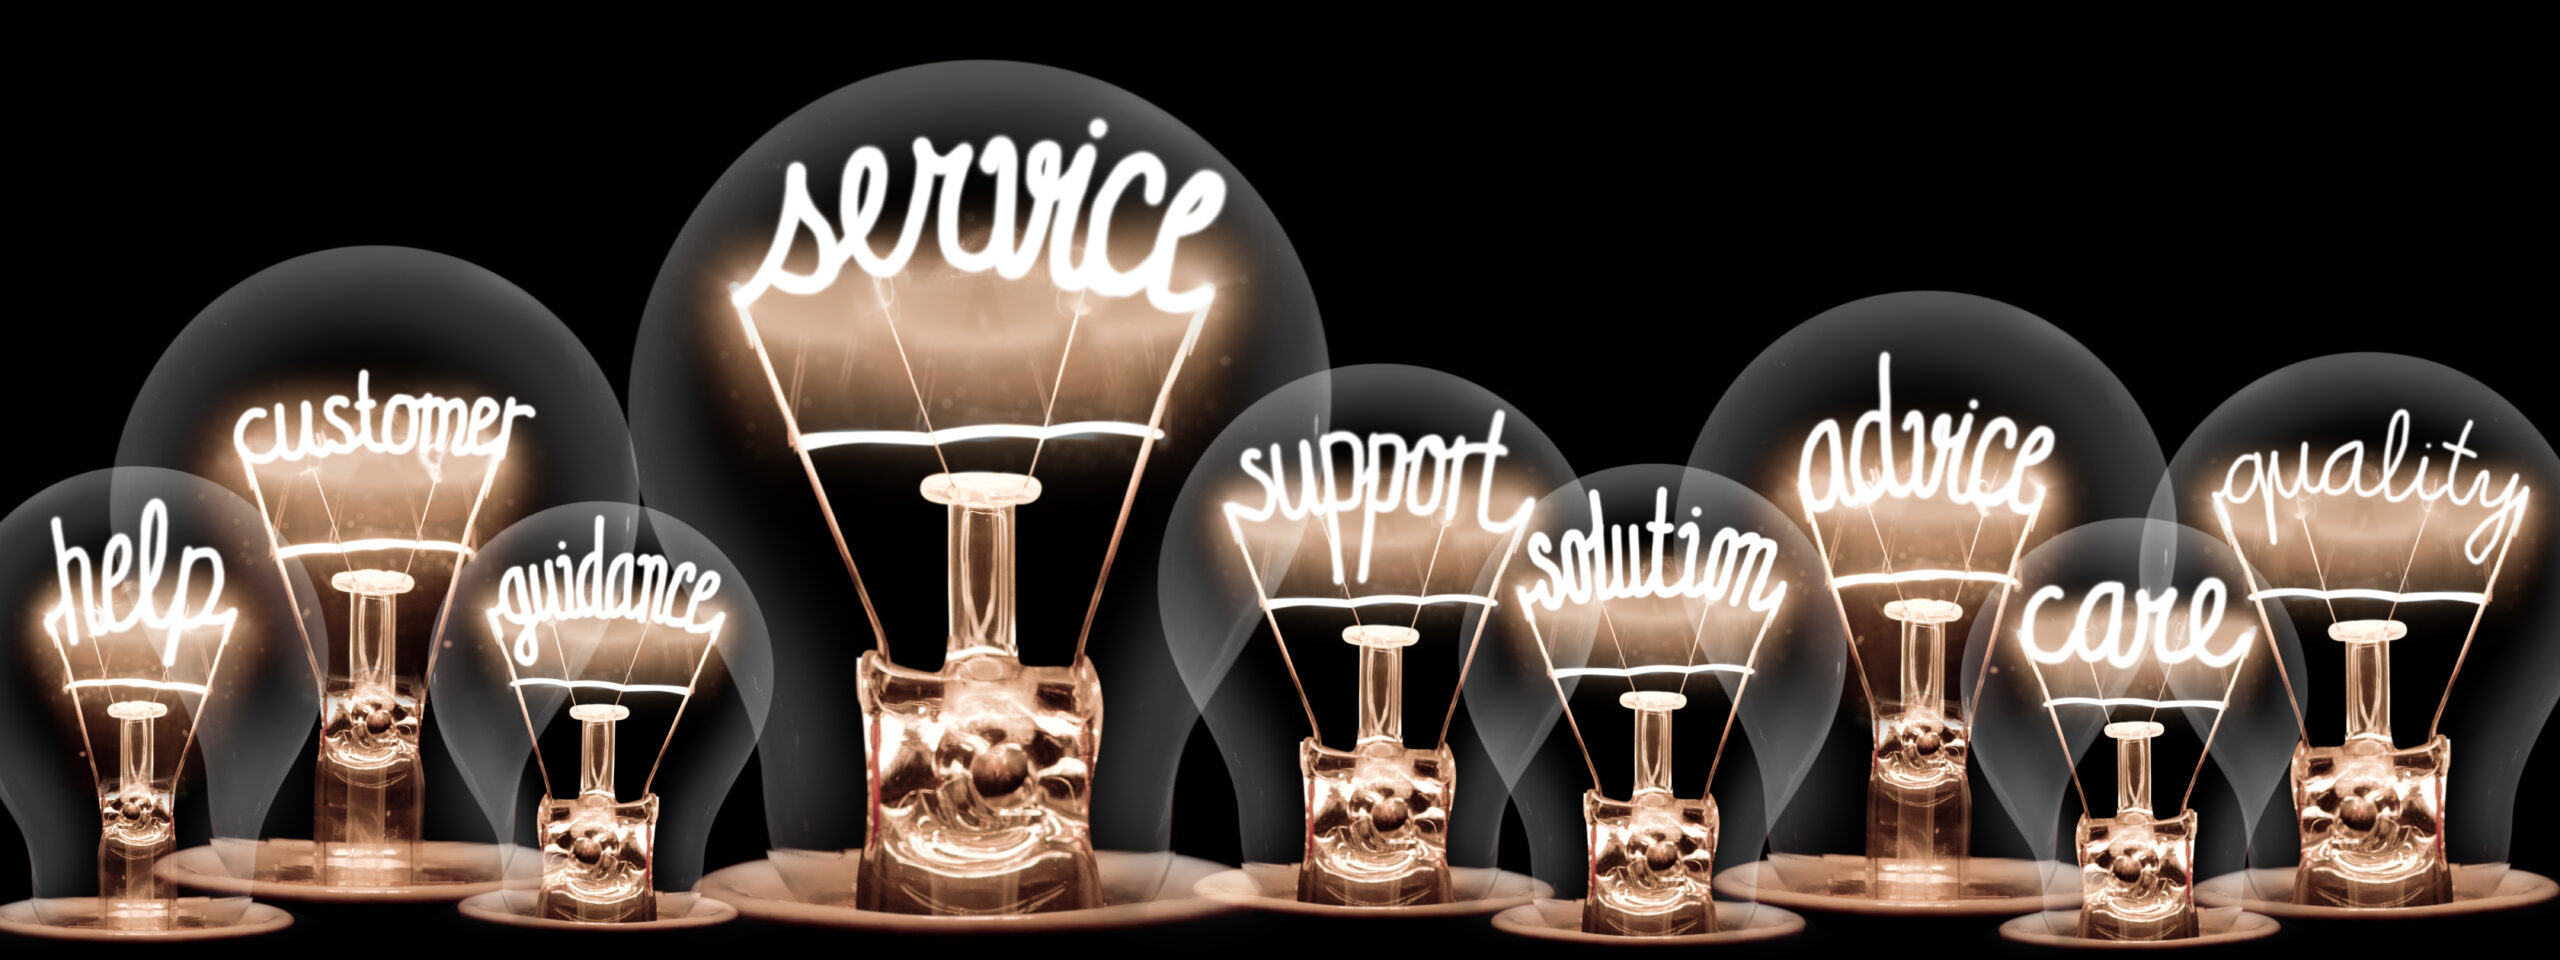 Help. Customer. Guidance. Service. Support. Solution. Advice. Care. Quality